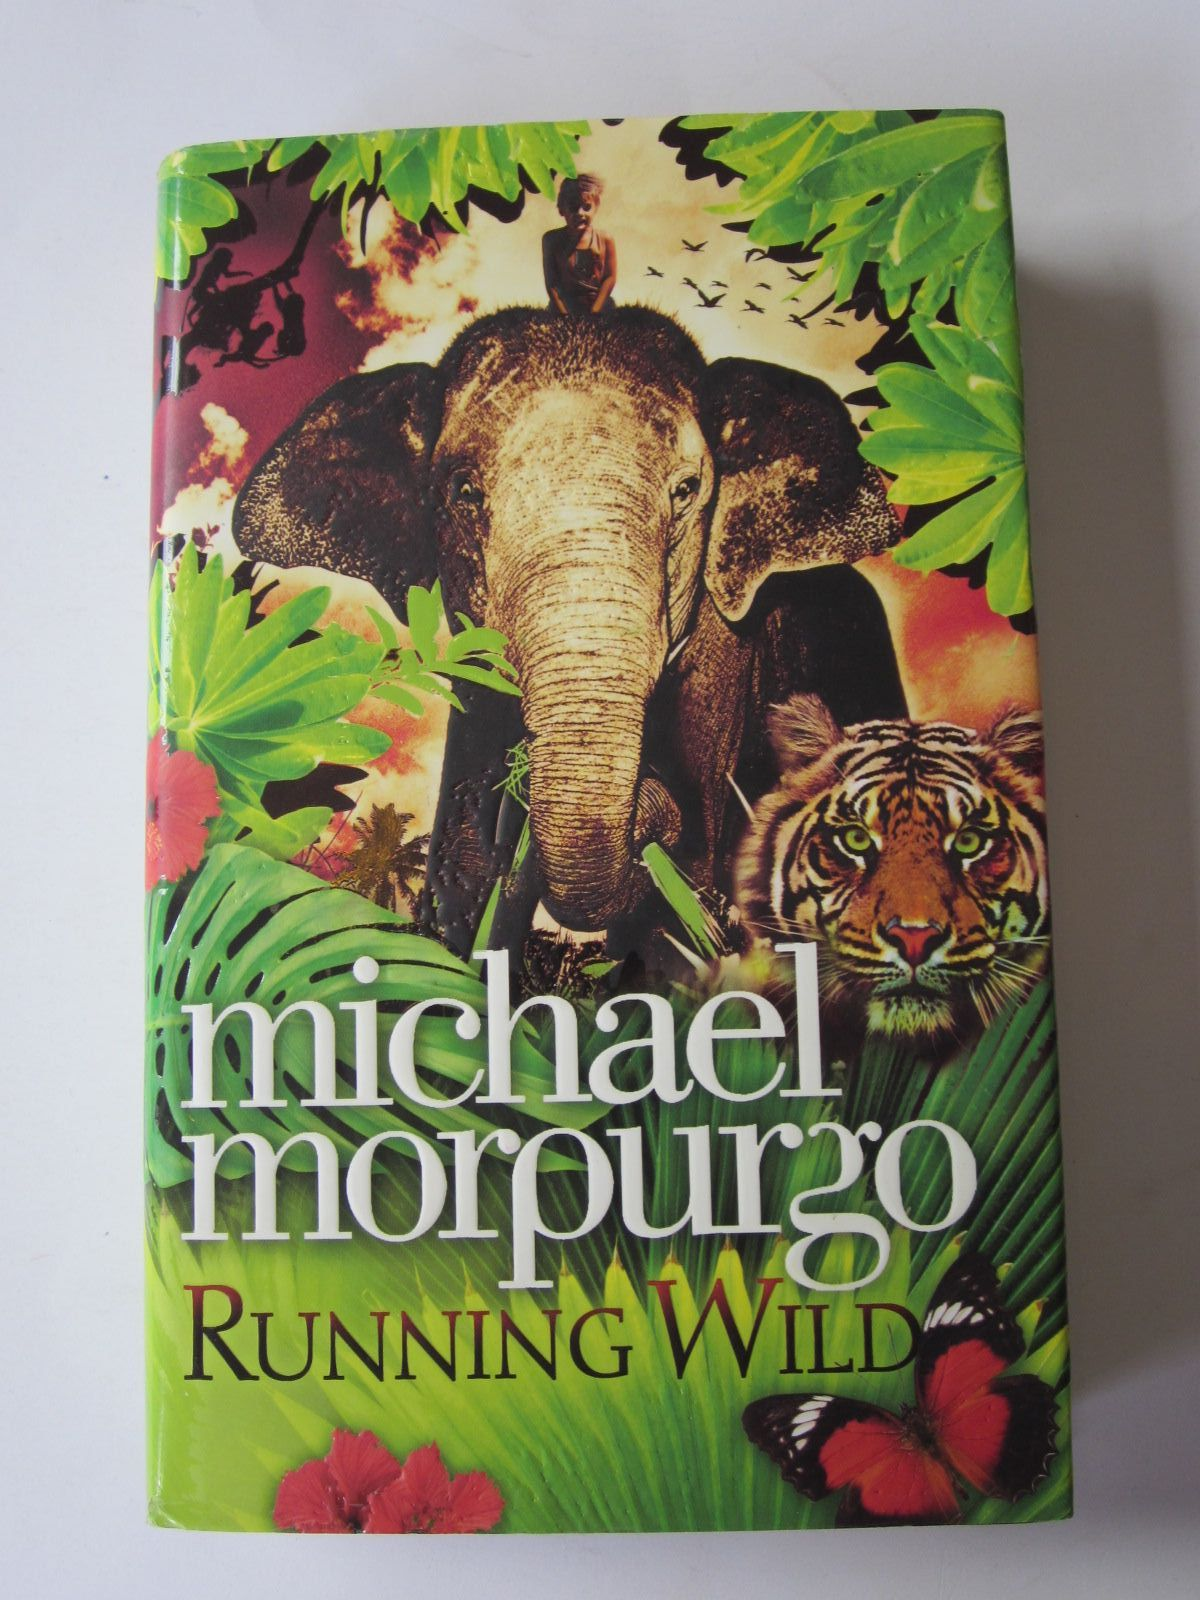 Photo of RUNNING WILD written by Morpurgo, Michael illustrated by Young, Sarah published by Harper Collins Childrens Books (STOCK CODE: 1401261)  for sale by Stella & Rose's Books